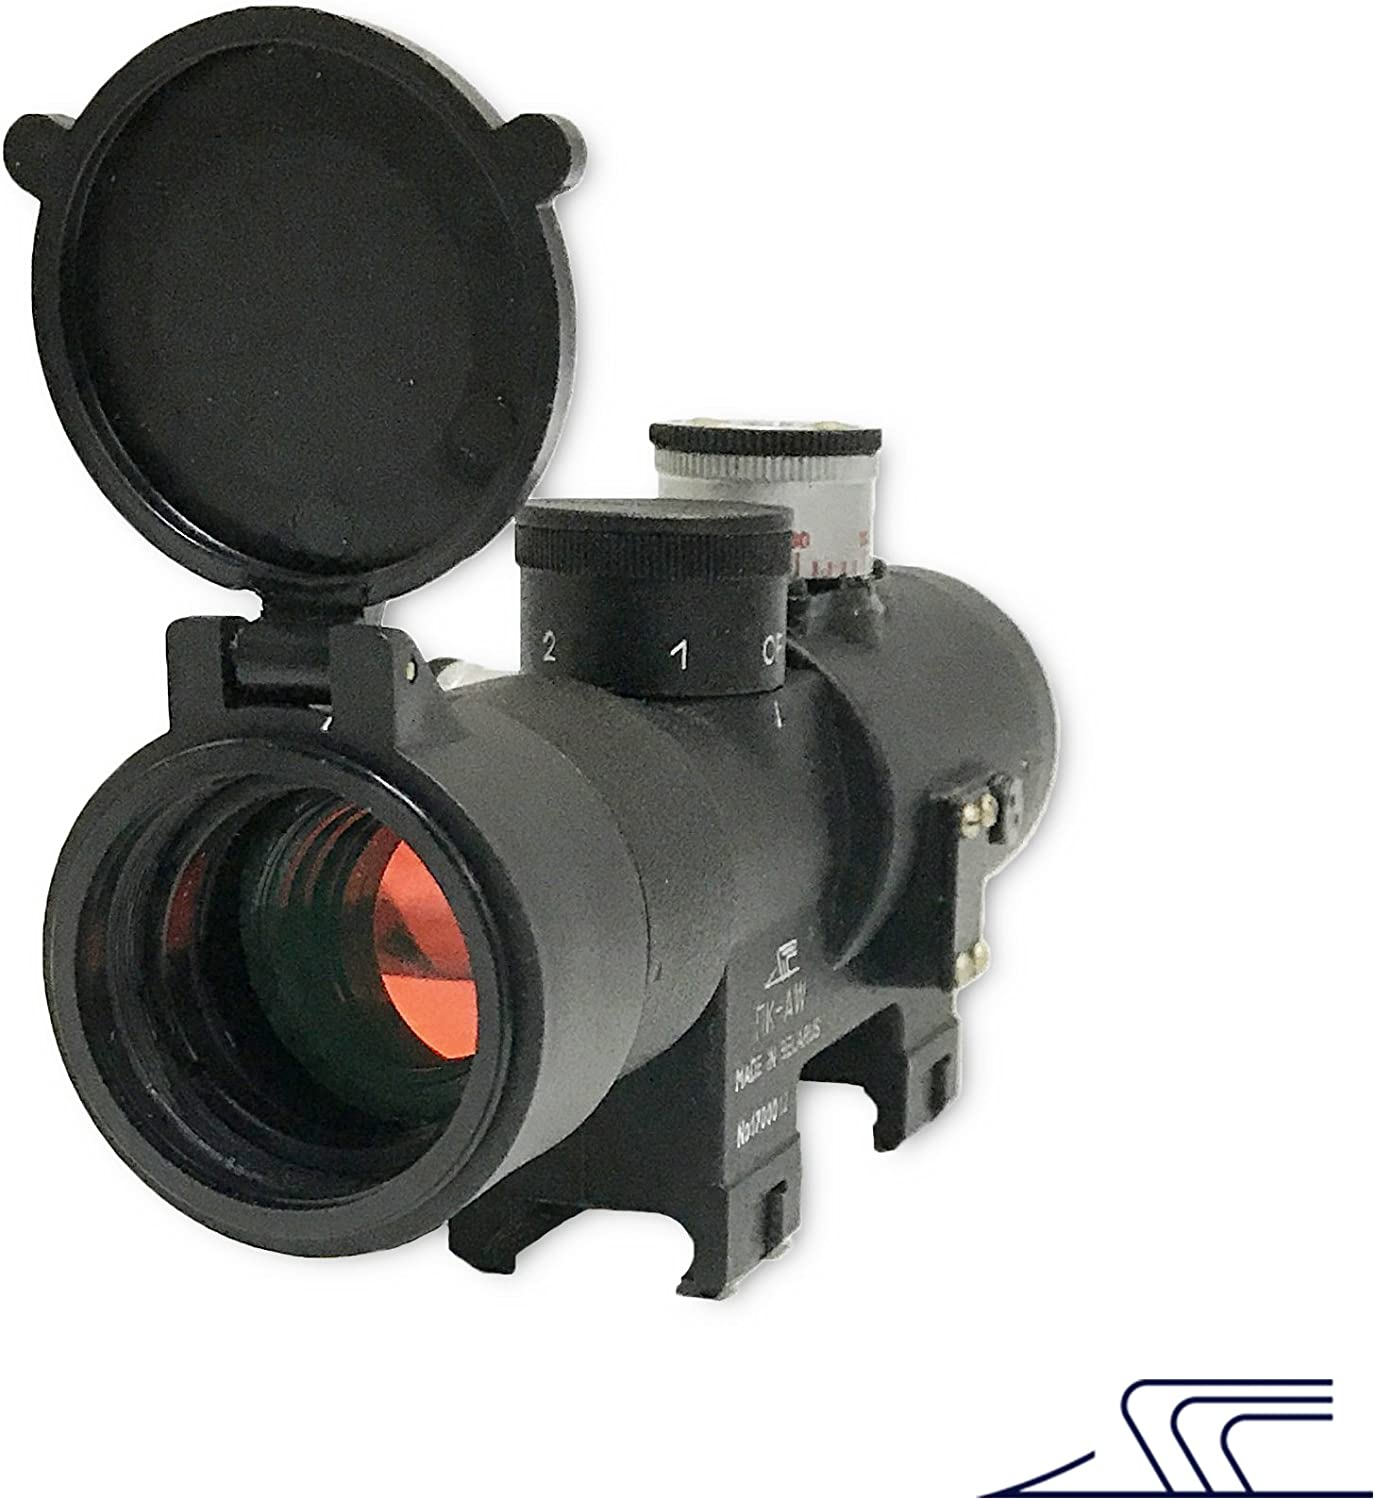 PKAW Russian BelOMO Collimator Sight Red Dot Rifle Scope Weaver Mount